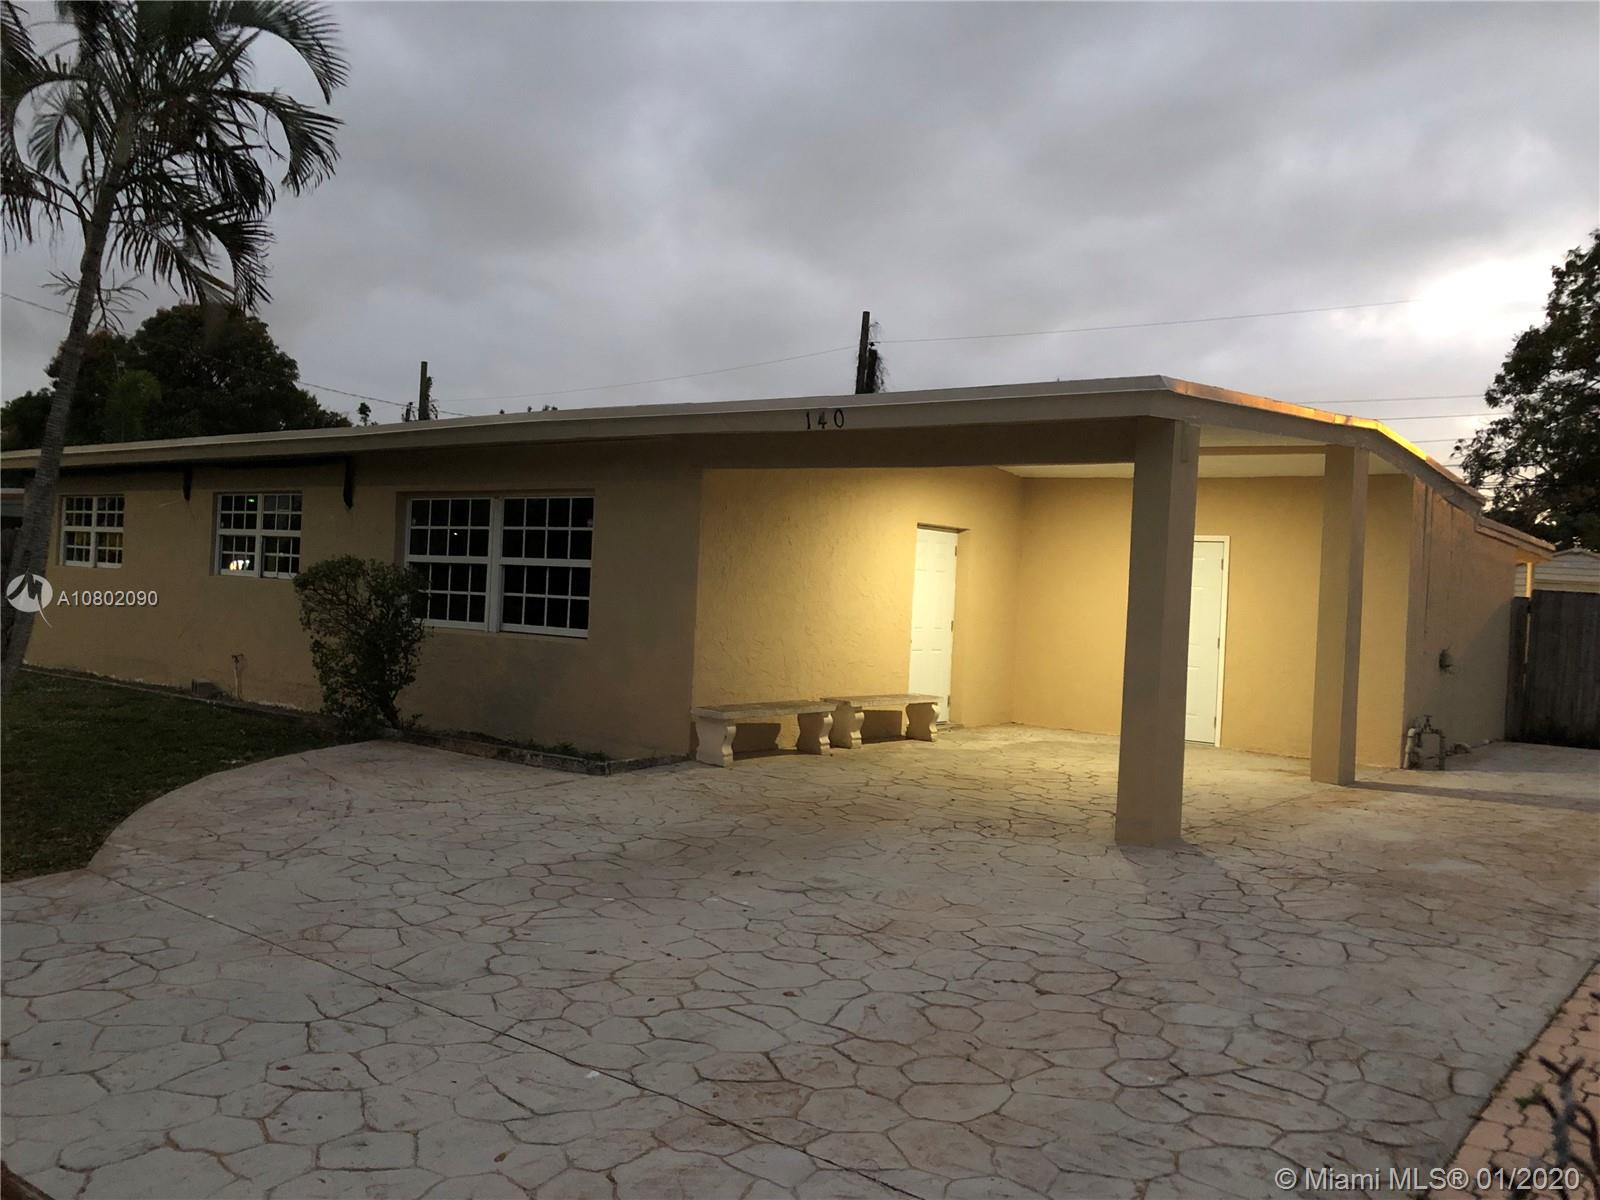 Renovated home near everything in Broward Estates, includes three bedrooms and two full baths.  A huge master bedroom that is simply the size of two rooms in one. Perfect for home office or living space inside your bedroom. This beautiful home come with a brand new, super quiet, cost effective multi state wall AC units to keep your home cool. Brand new vinyl floors in living area and great looking tiles through the rest of the home. Both bathrooms were redone with some new piping. Large backyard for everyone in the family with a storage shed, a workshop and laundry area. For the people that has more than two cars, YES there is space to more than 5 cars. Must see to appreciate.